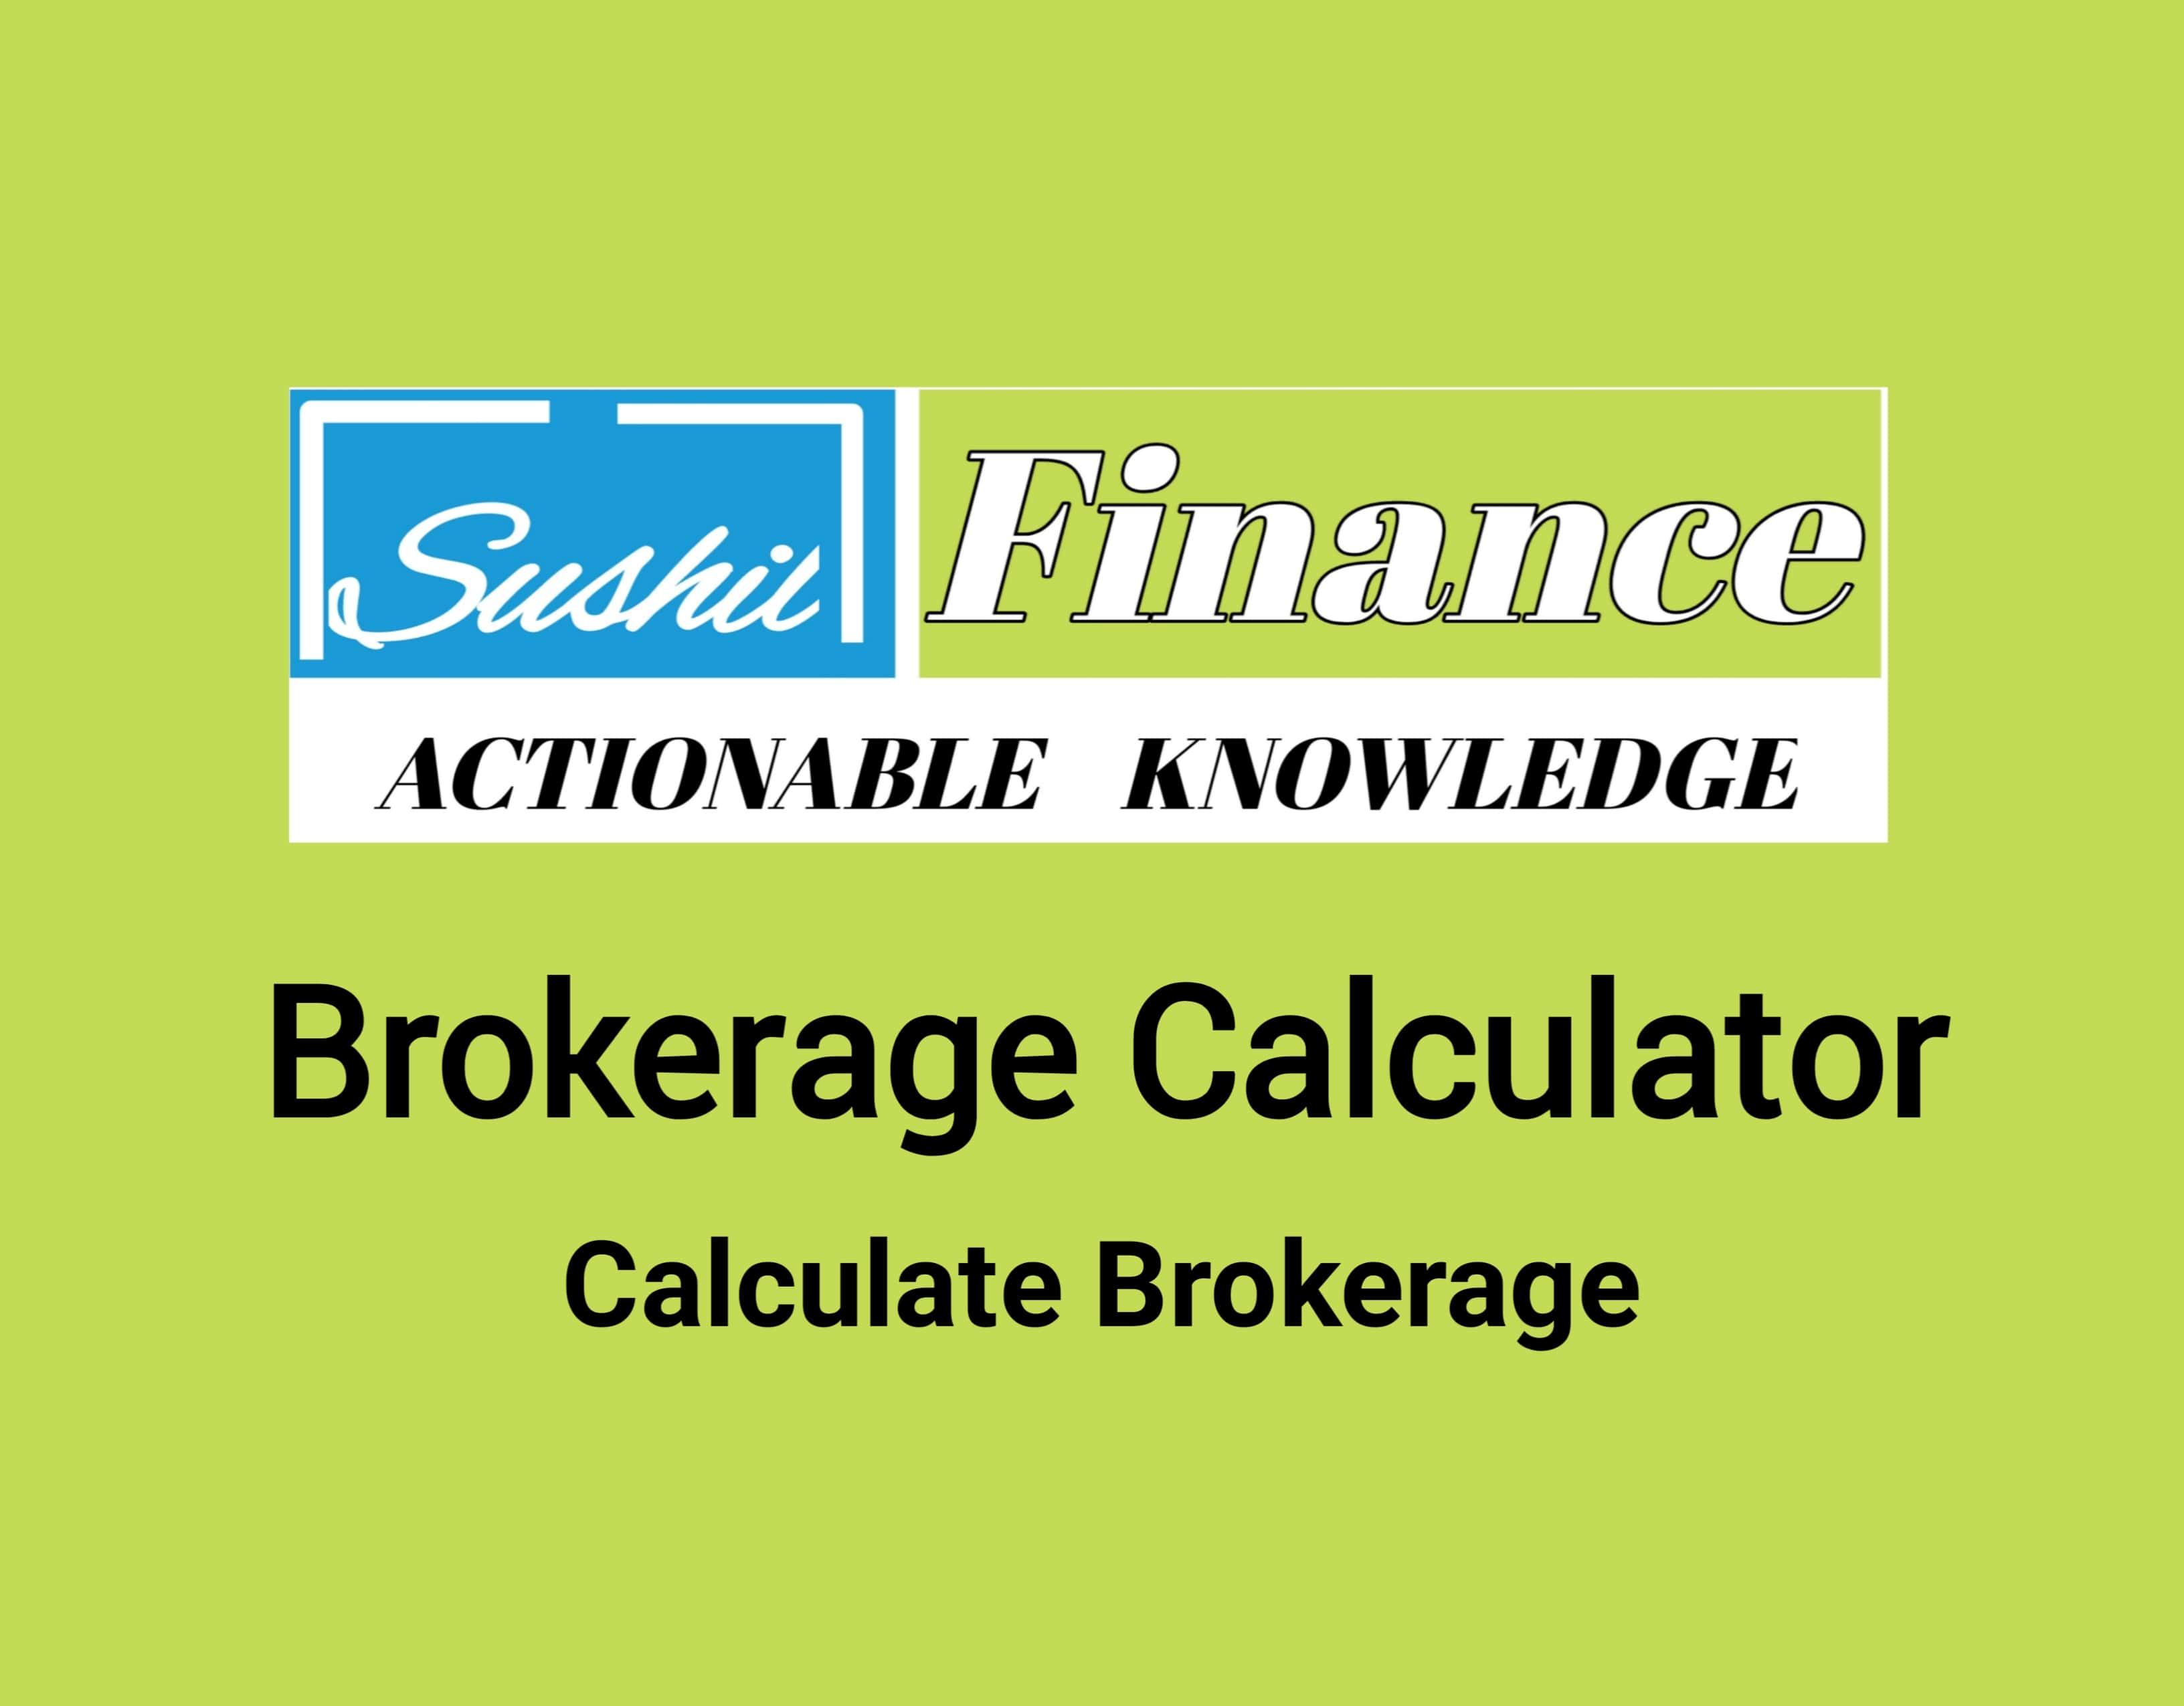 Sushil Finance Brokerage Calculator